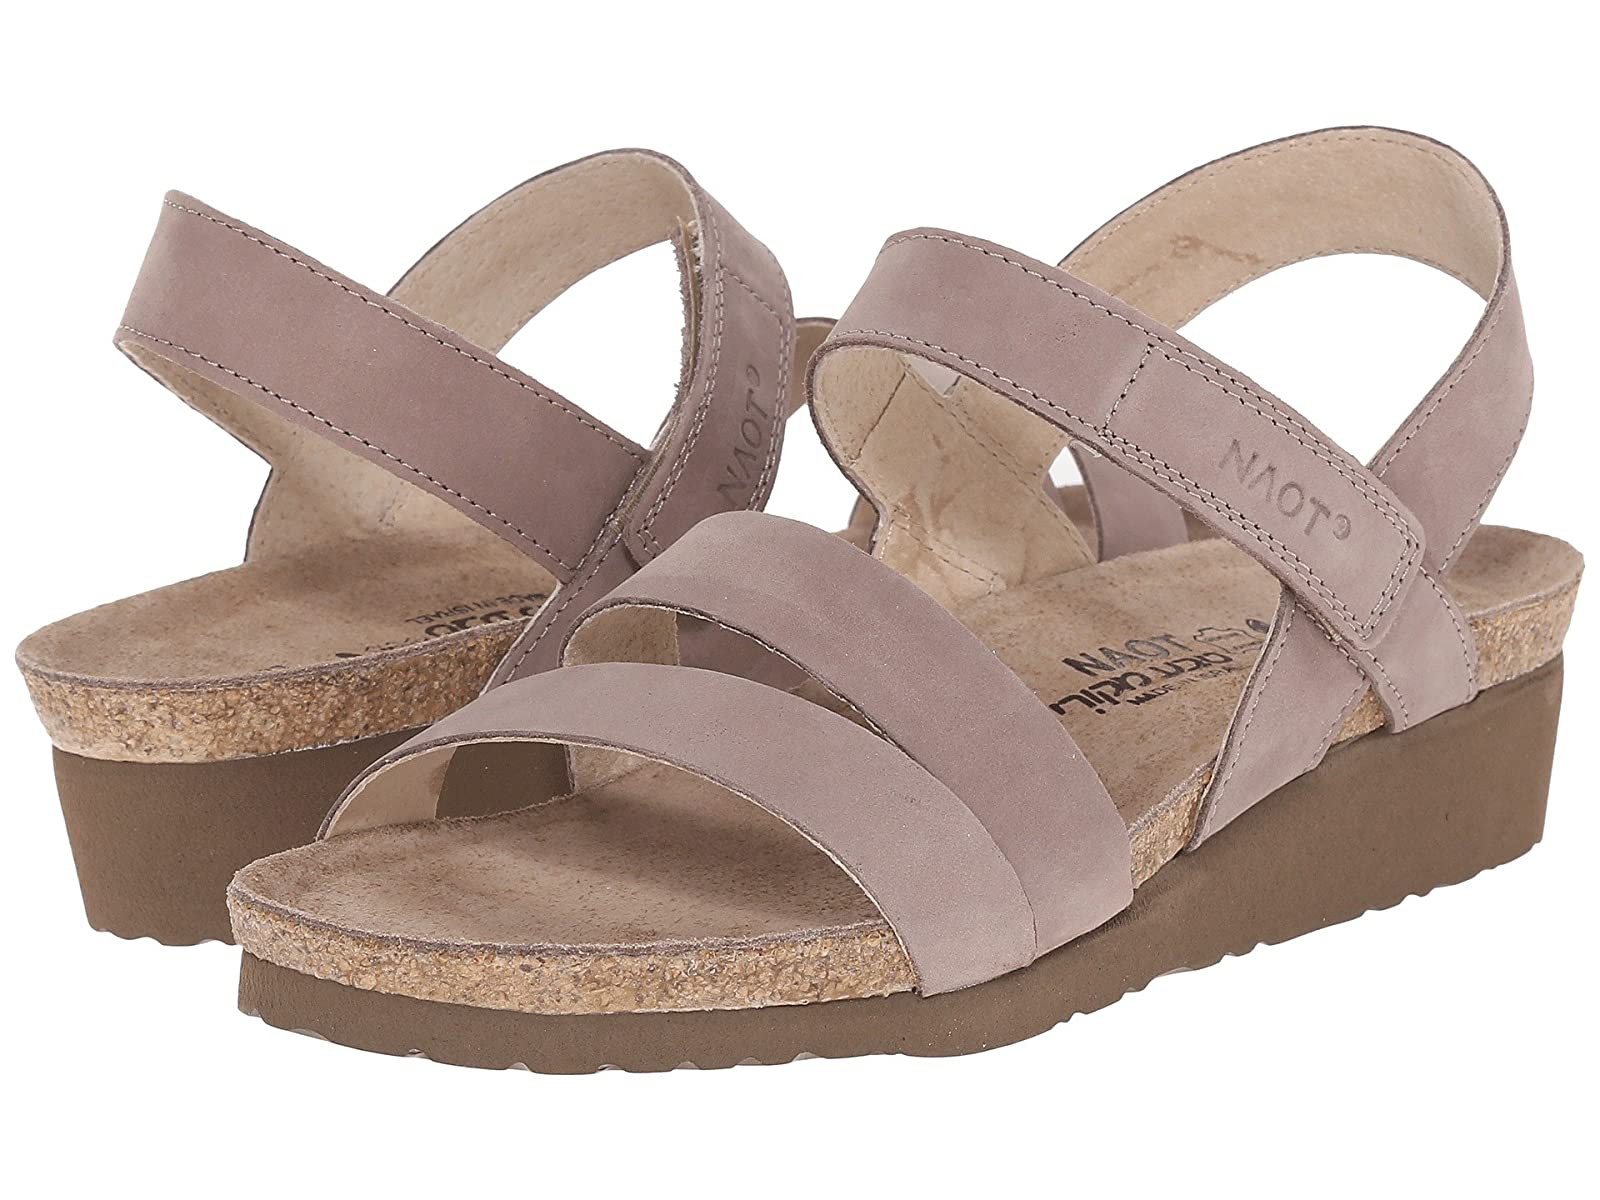 Naot KaylaAtmospheric grades have affordable shoes